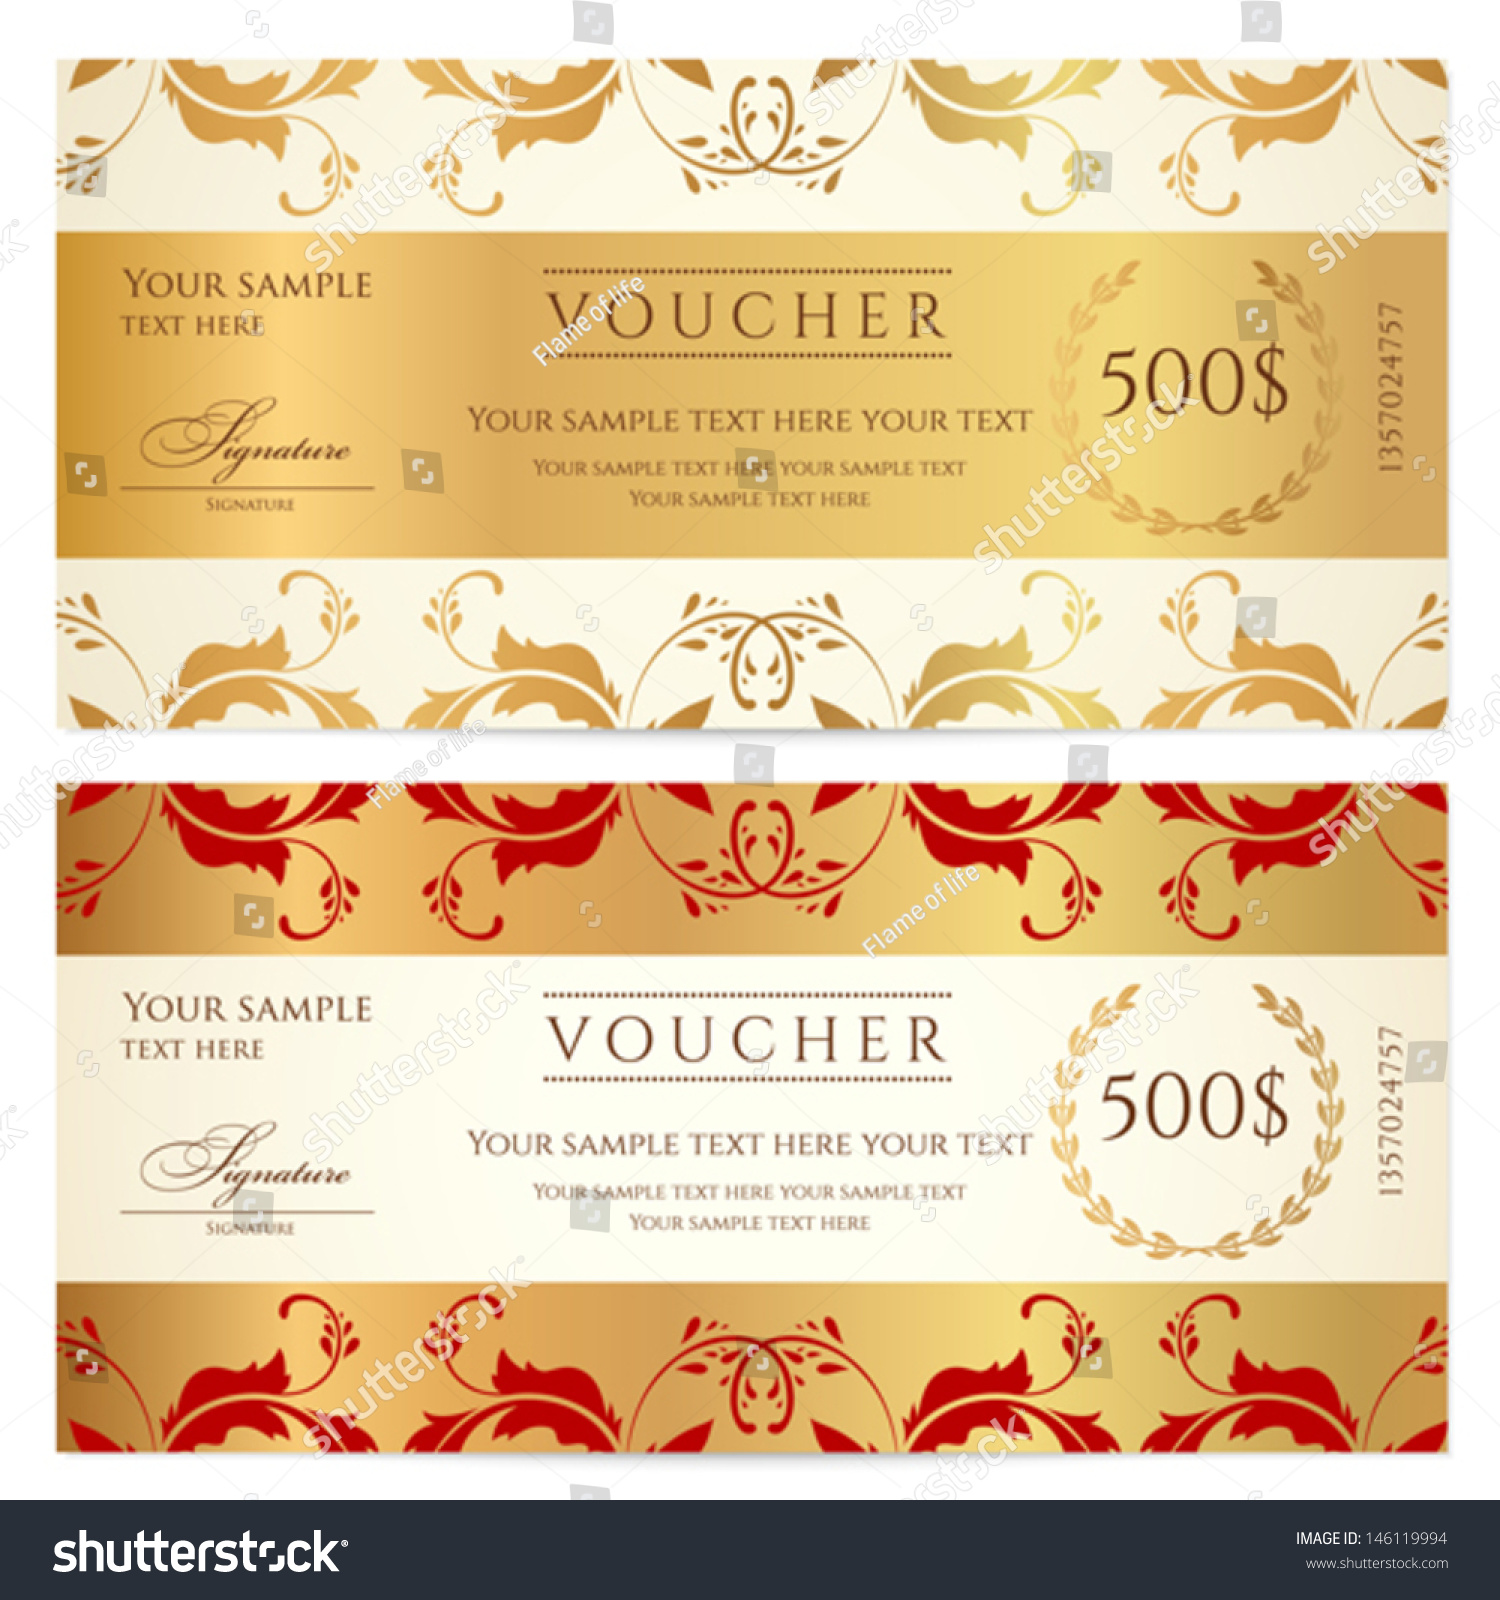 Vector gift certificate and coupon templates deals sent to phone download free gift certificate word template that you can use to make awesome gift cards with ms office 2010 and 2013 yelopaper Image collections